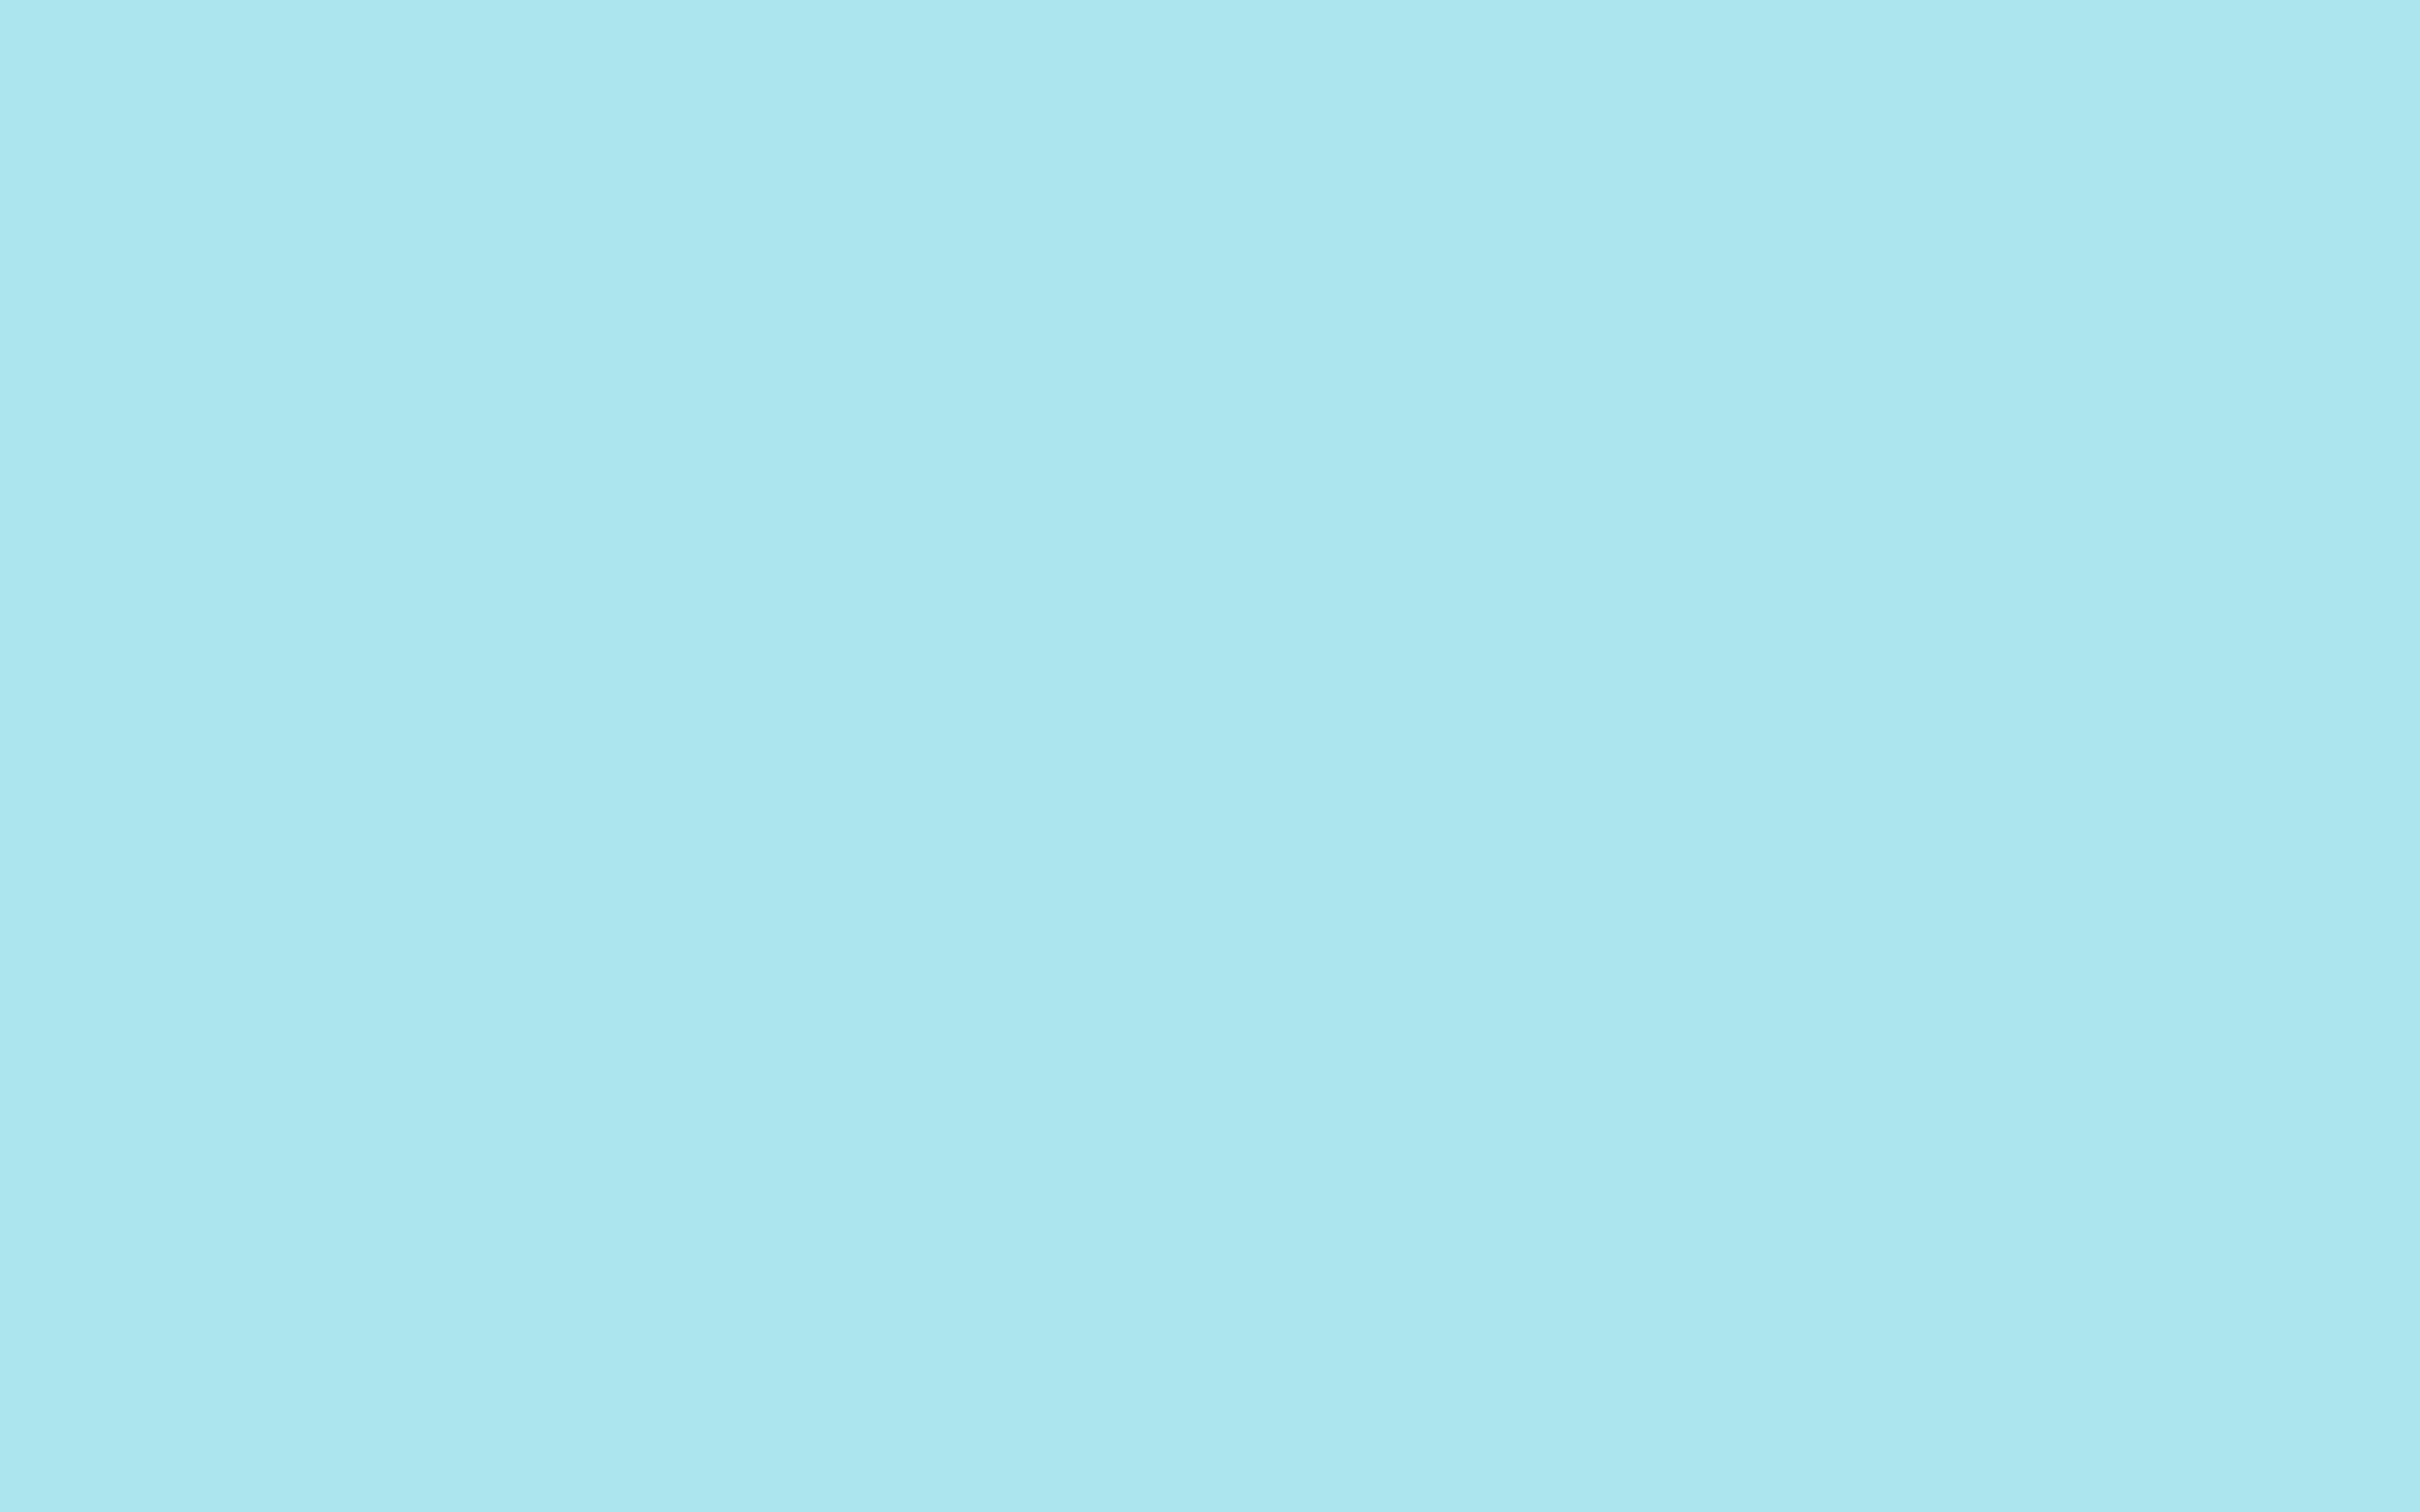 2560x1600 Blizzard Blue Solid Color Background